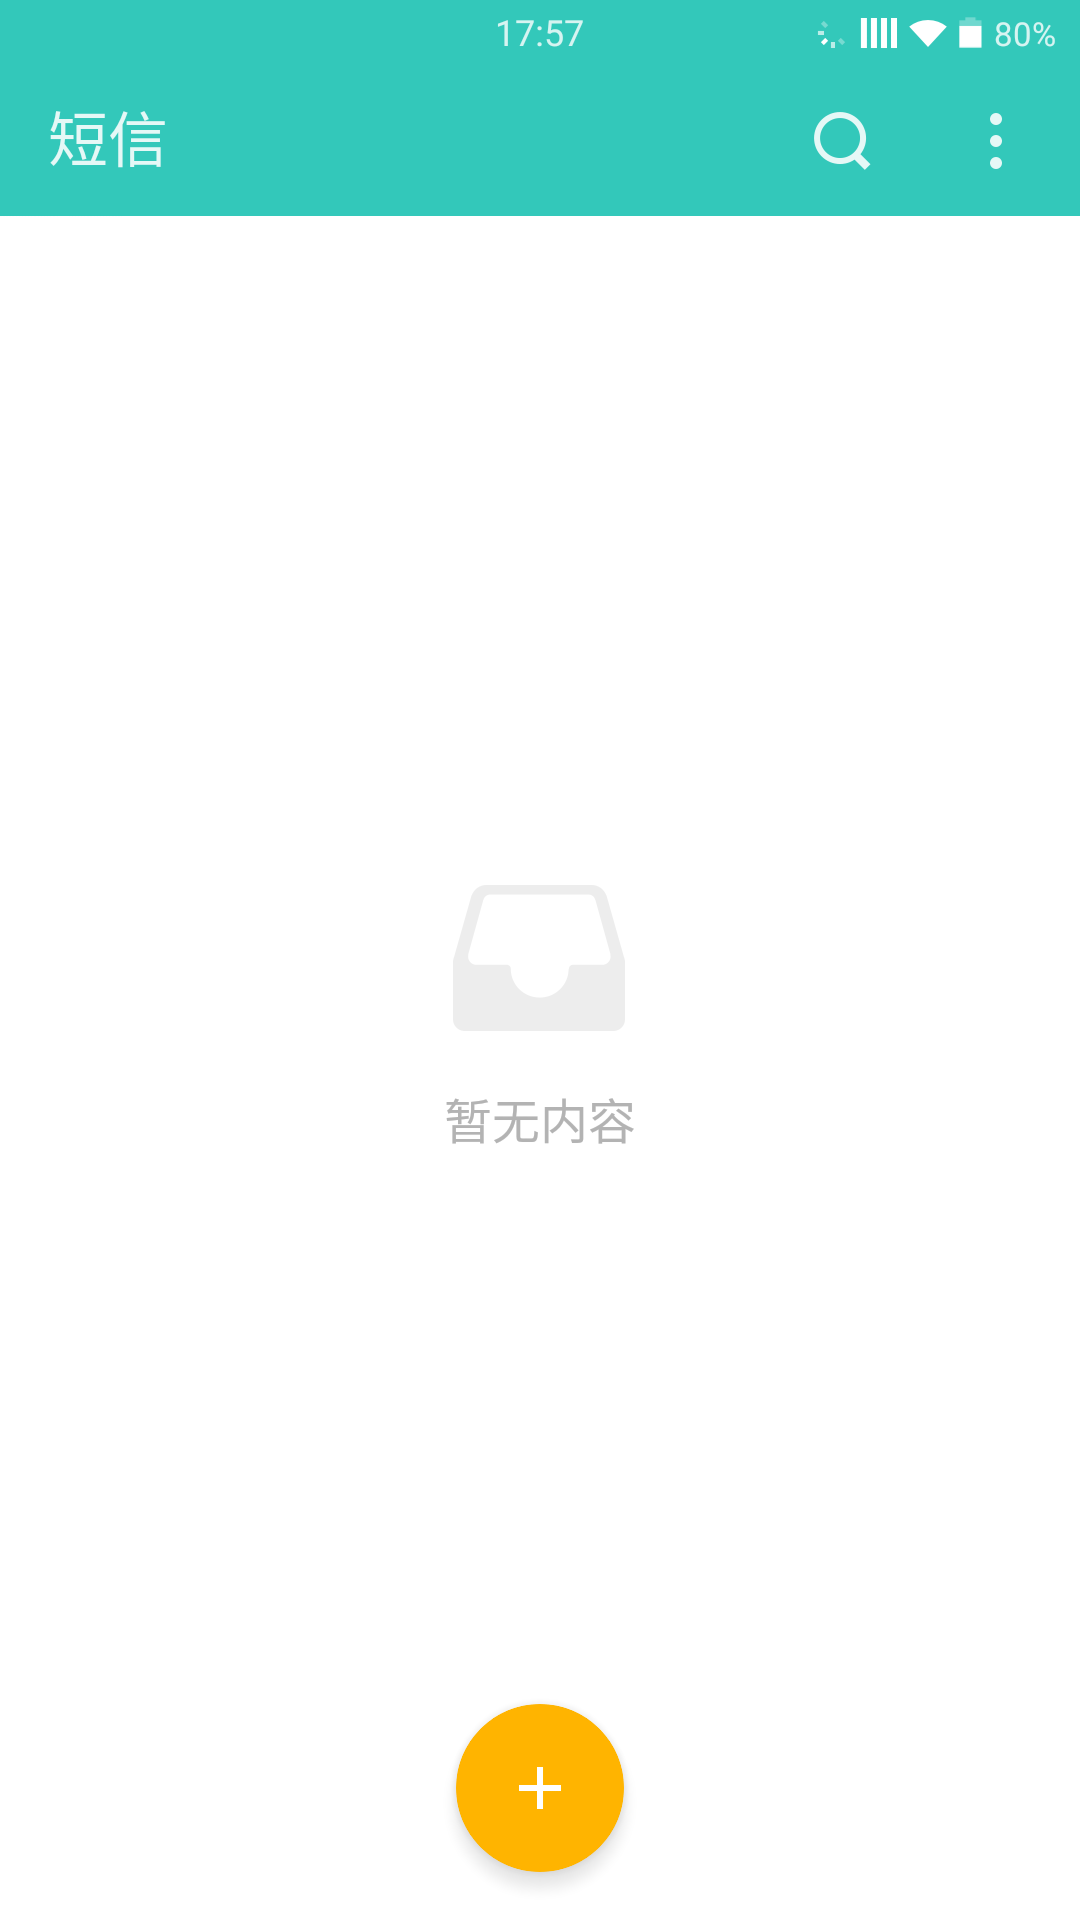 Screenshot_2015-06-05-17-57-30.png